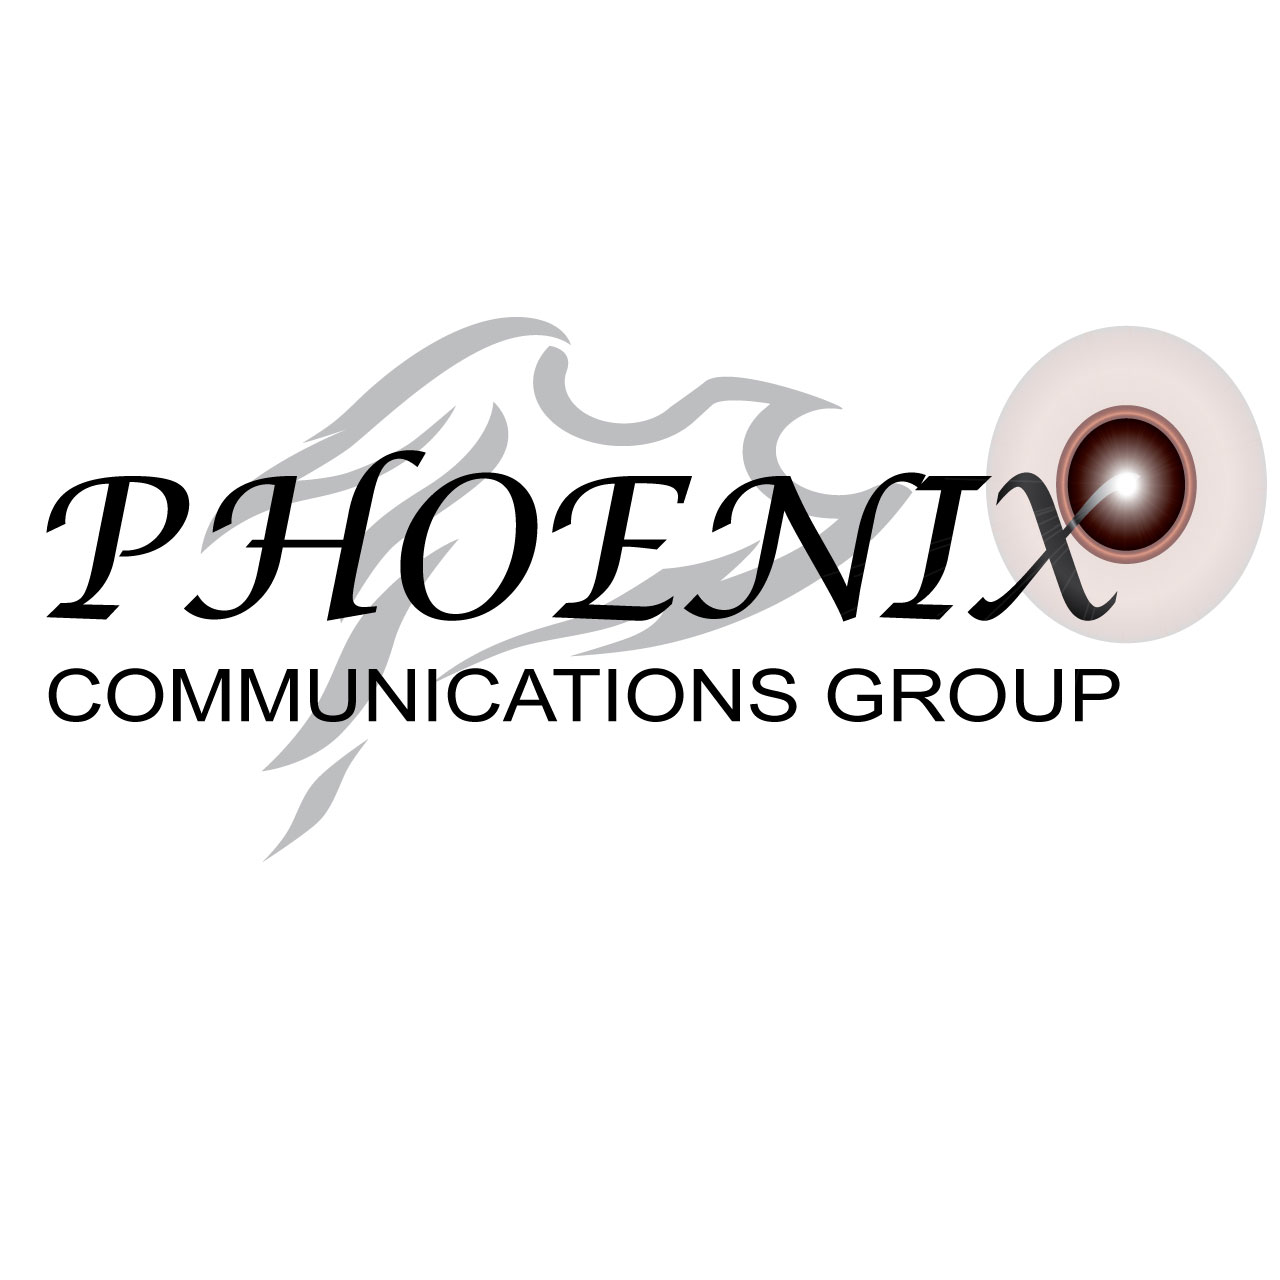 Logo Design by Ethan Waller - Entry No. 16 in the Logo Design Contest Phoenix Communications Group.